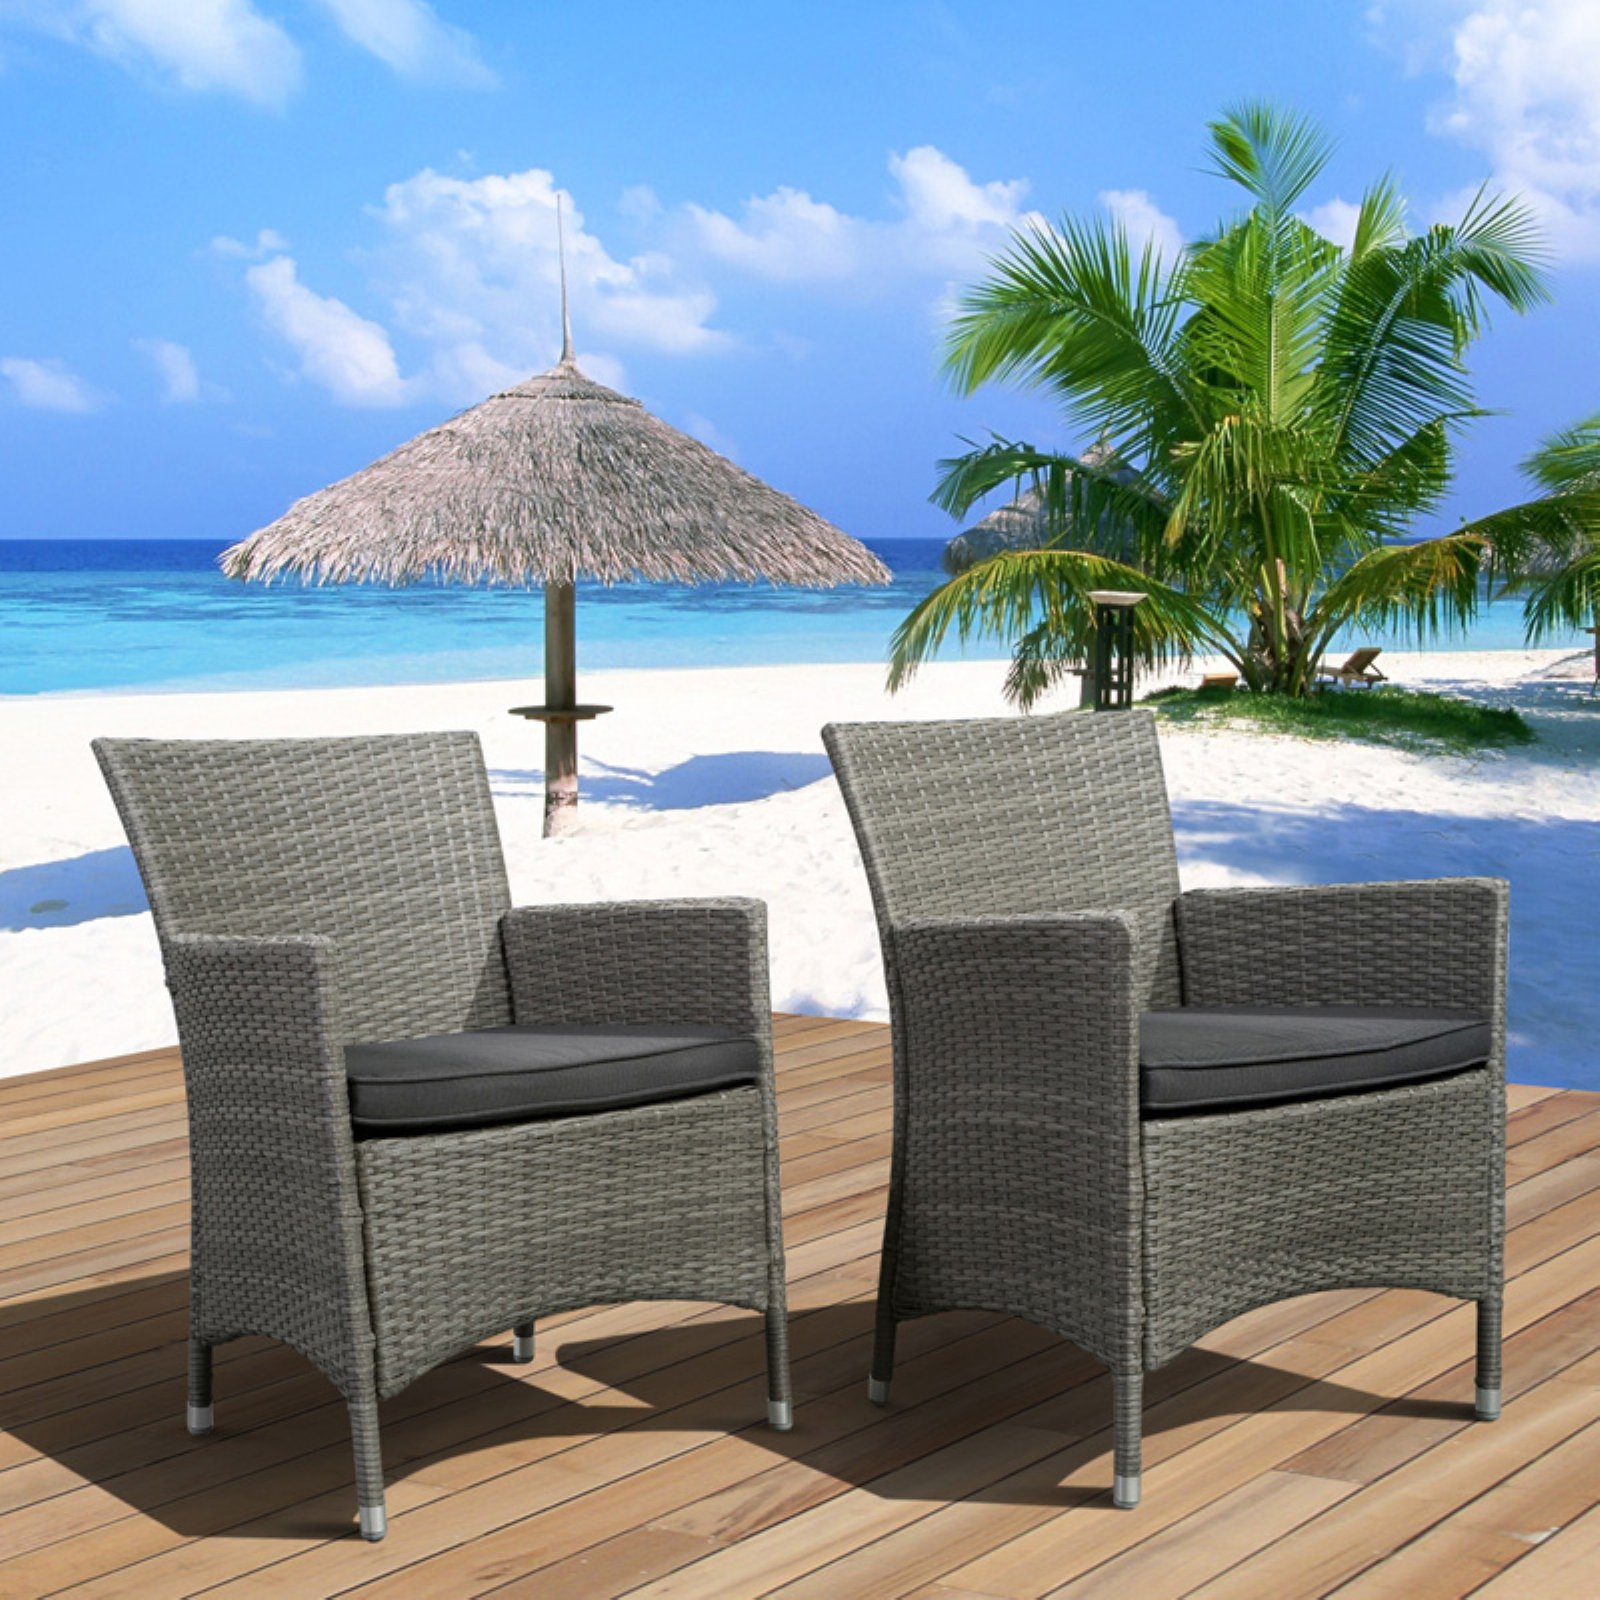 Atlantic Liberty All-Weather Wicker Deluxe Patio Dining Chair - Set of 2